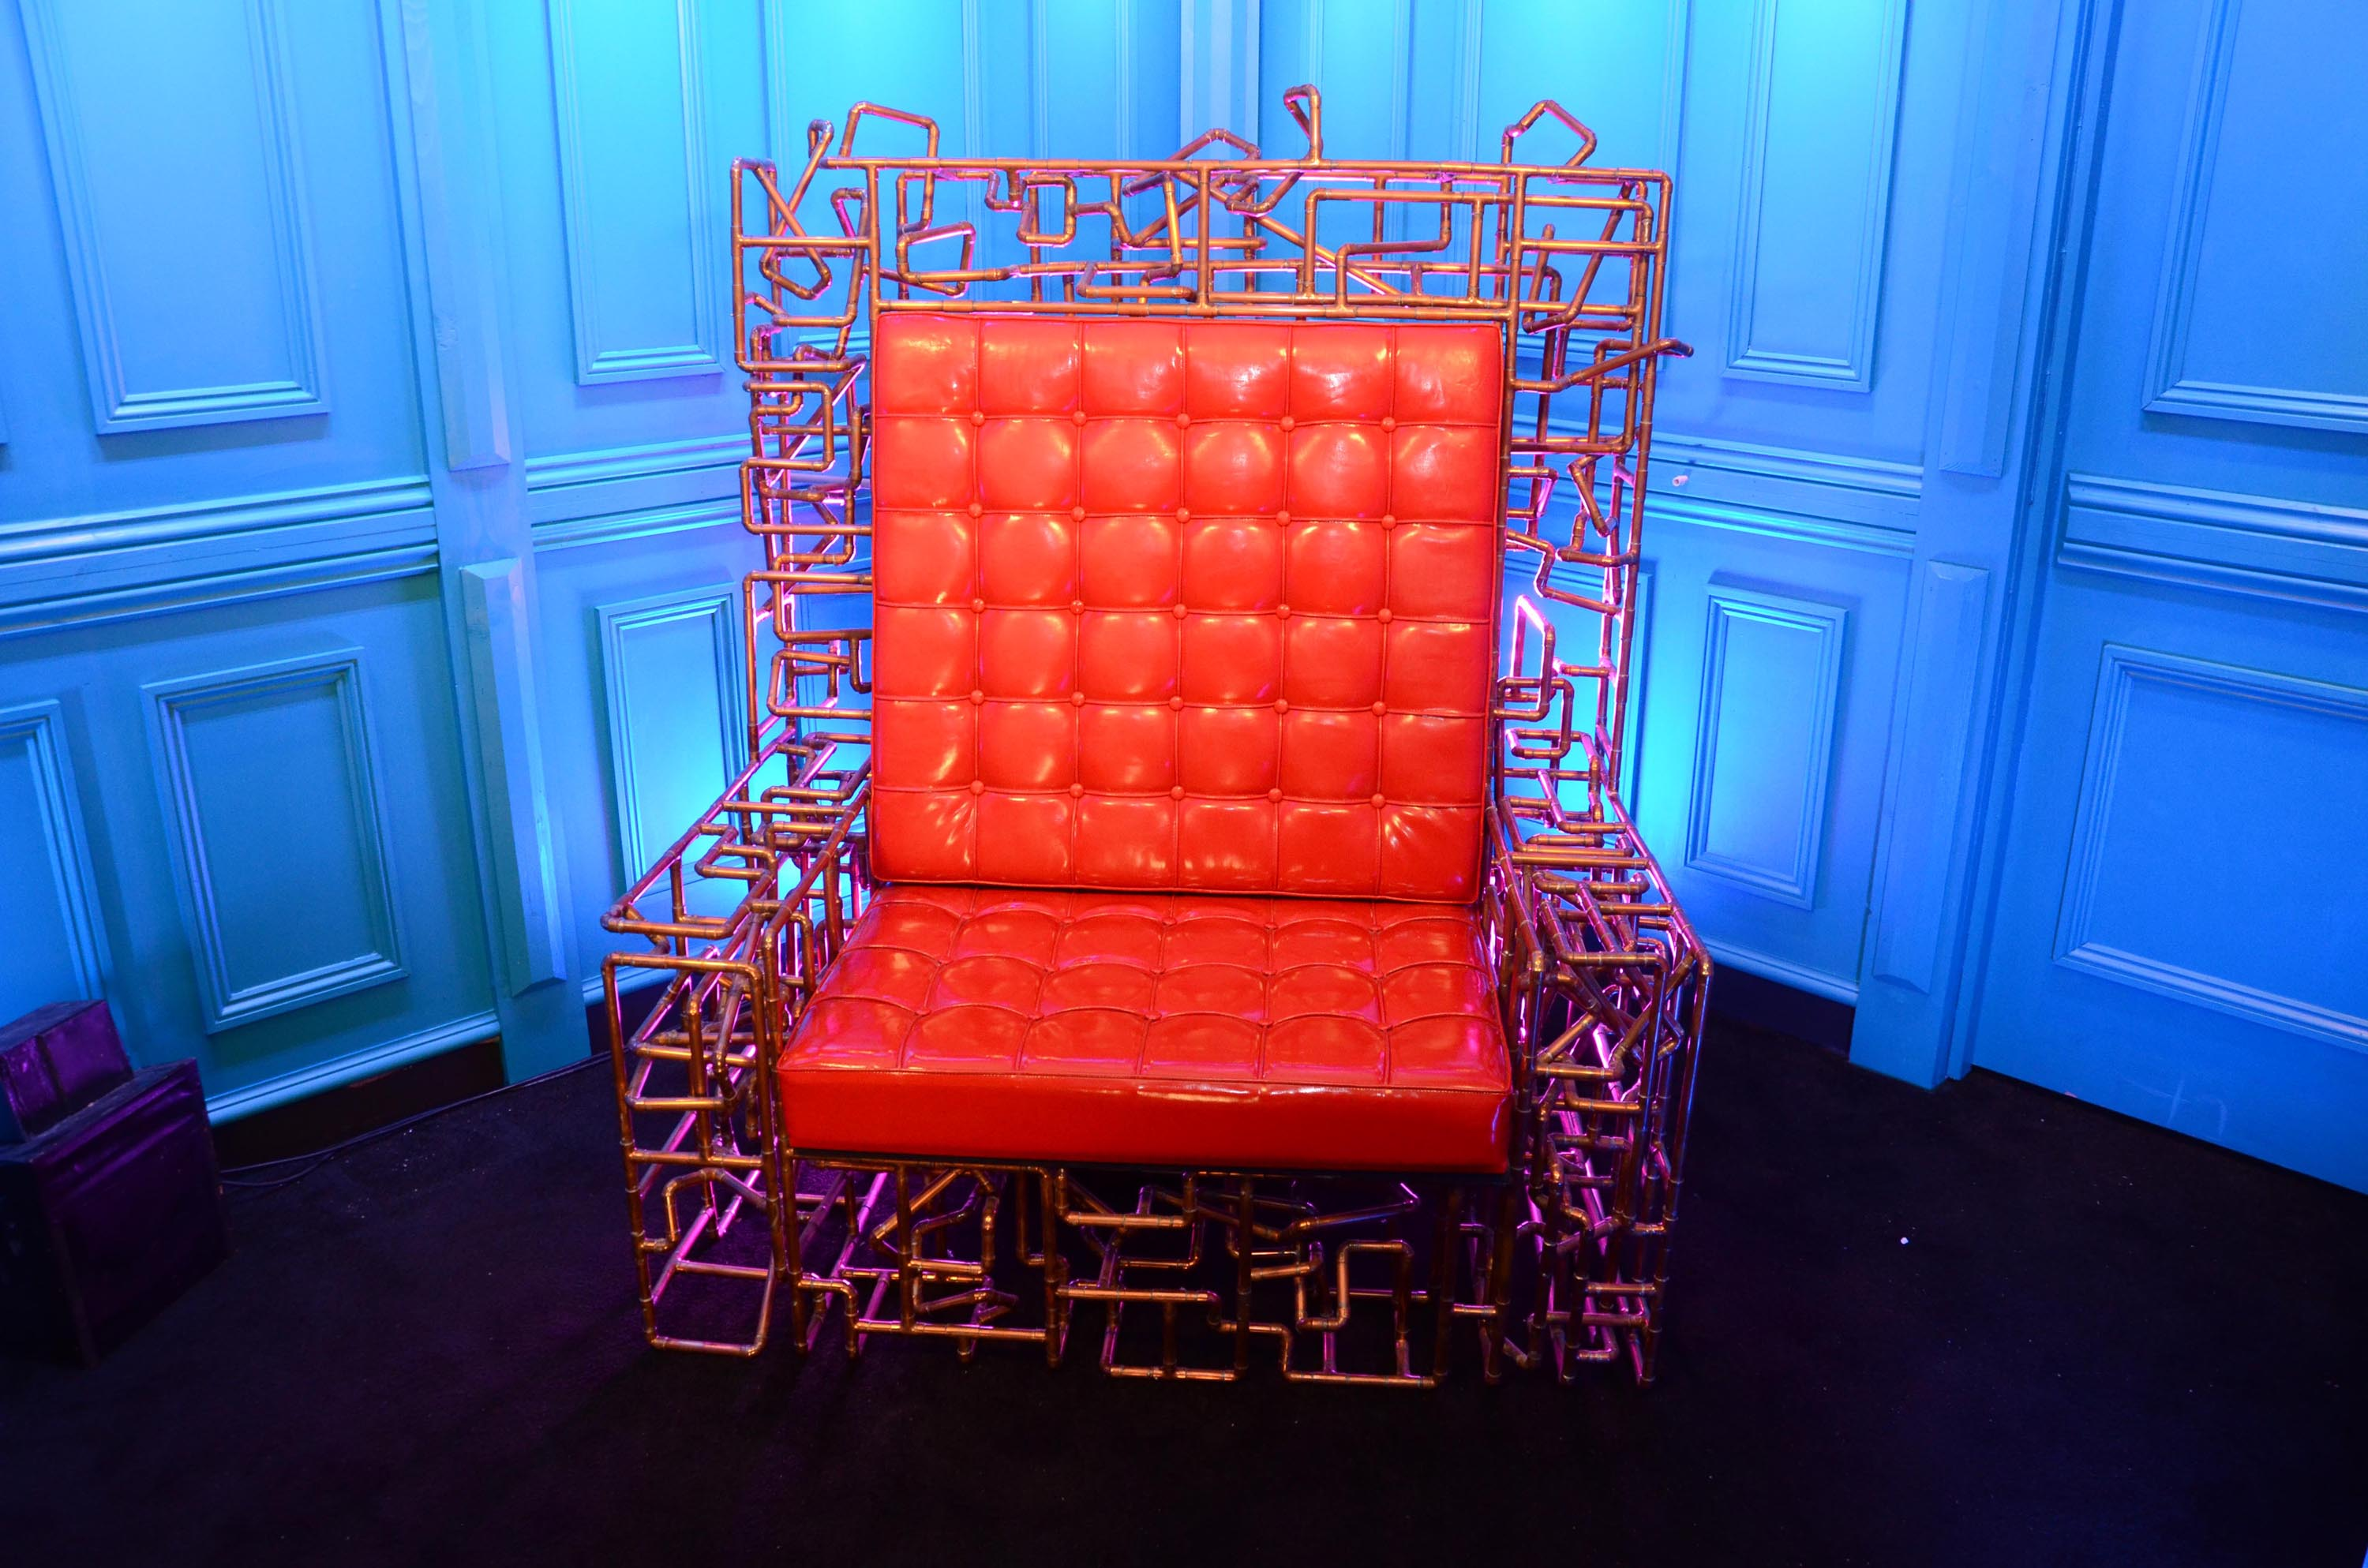 Day -1 Power Trip Diary Room Chair Revealed u2013 Celebrity Big Brother 22 | Big Brother 19 | Big Brother 2018 | Big Brother UK | Channel 5 & Day -1: Power Trip Diary Room Chair Revealed u2013 Celebrity Big Brother ...